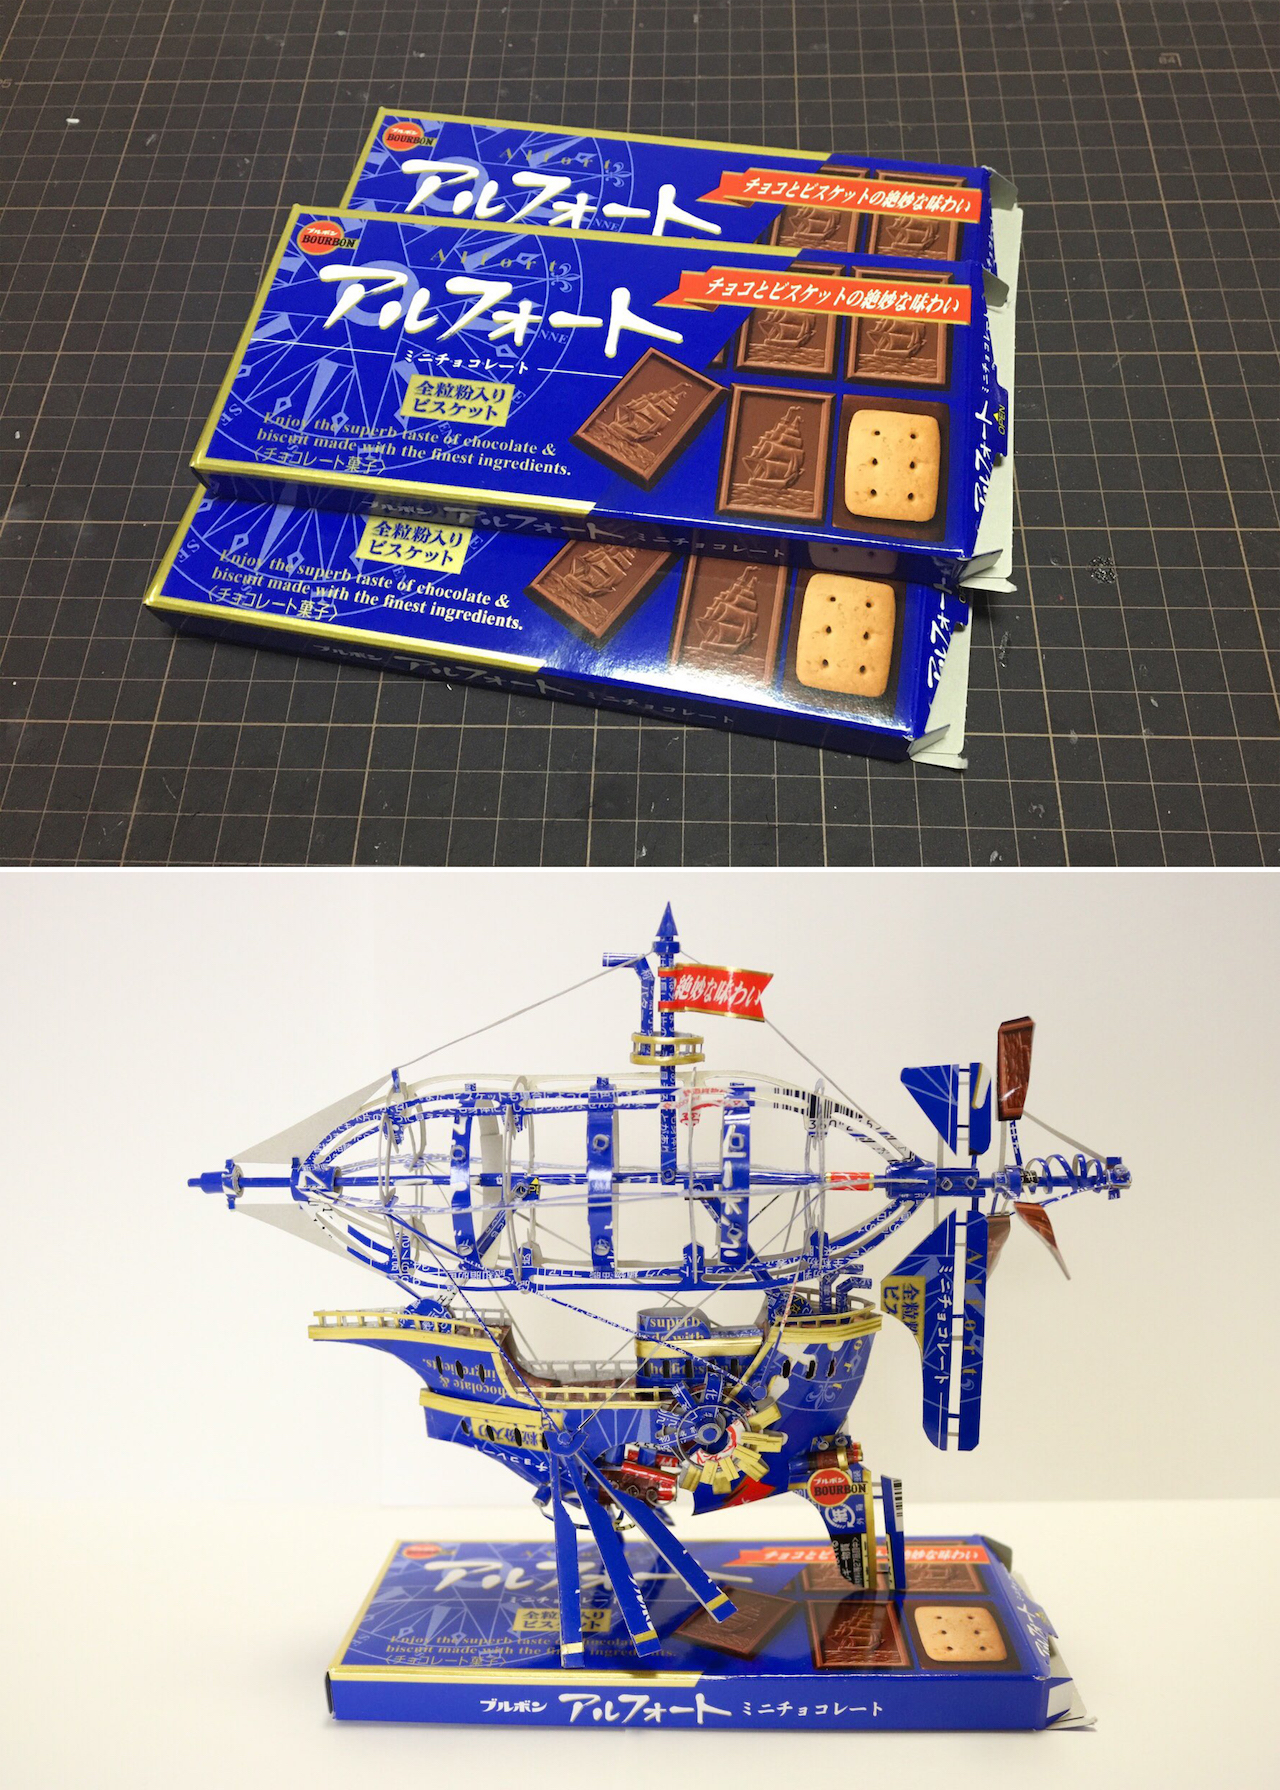 Product Packaging Turned Into Art - 33